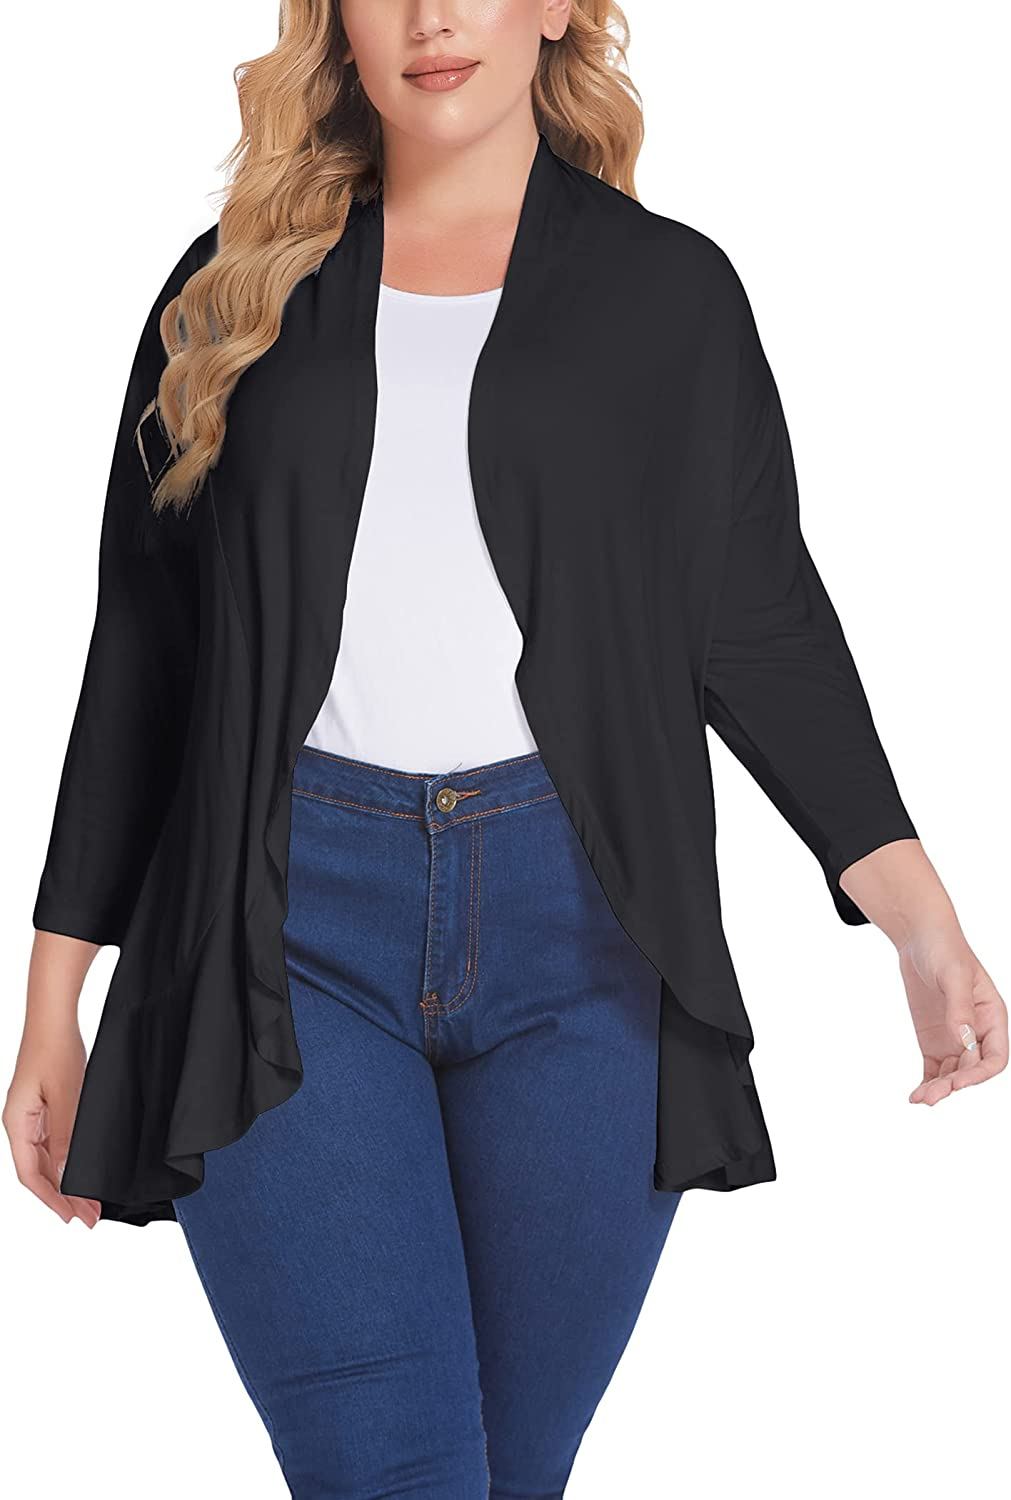 IN'VOLAND Women's Plus Size Cardigan Casual Open Front Cardigan 3/4 Sleeve Draped Ruffles Soft Knit Sweaters